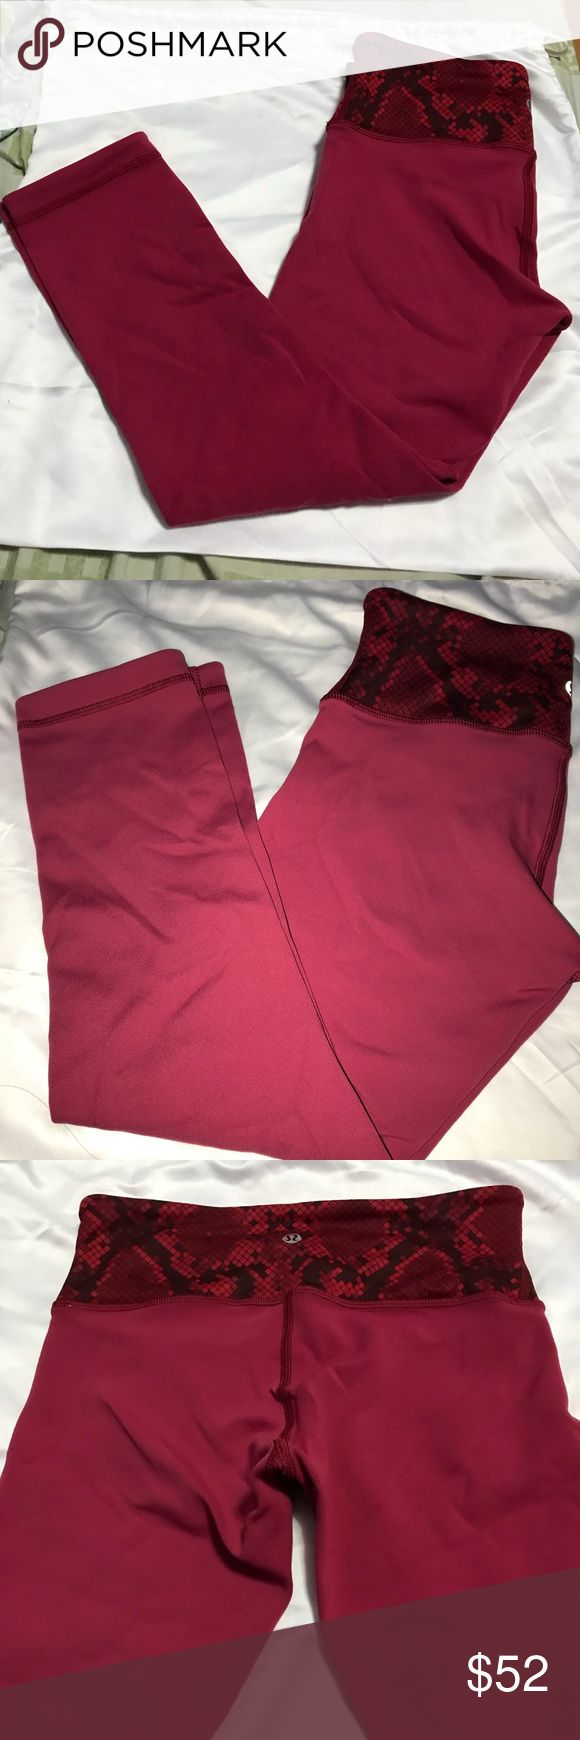 Lululemon Crop Leggings Crop leggings, color is a bit lighter than shown. It is shown better in the picture with flash. Worn a couple times, perfect condition. Very soft and stretchy. Feel free to make an offer or bundle up with other items and ill give a discount :) lululemon athletica Pants Leggings